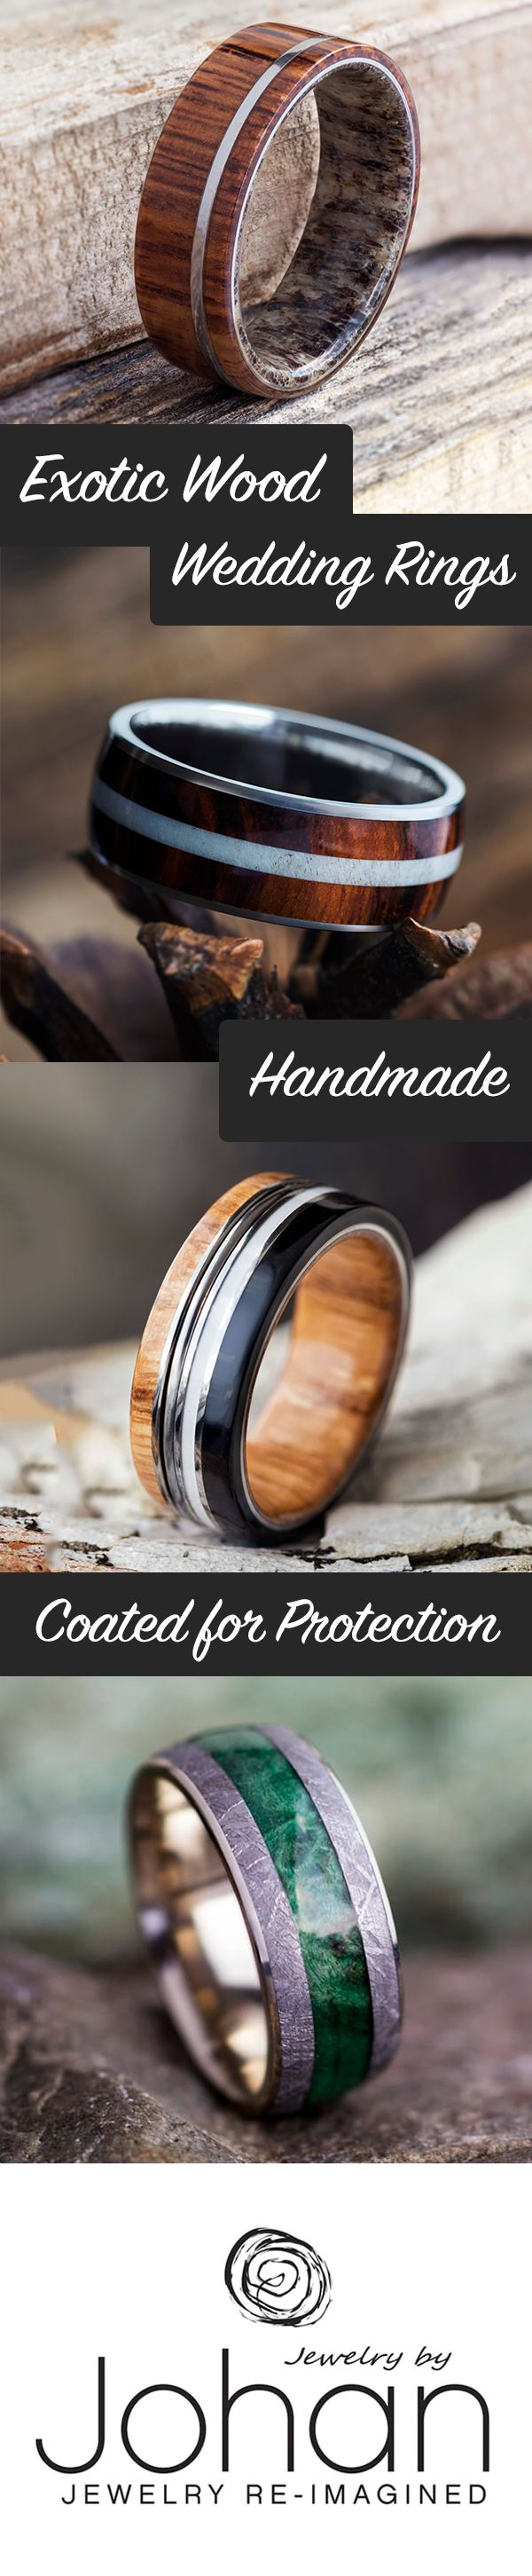 Give your wedding band a natural touch with over 100 exotic woods to choose from! Pair with other unique materials like deer antler, meteorite or dinosaur bone.